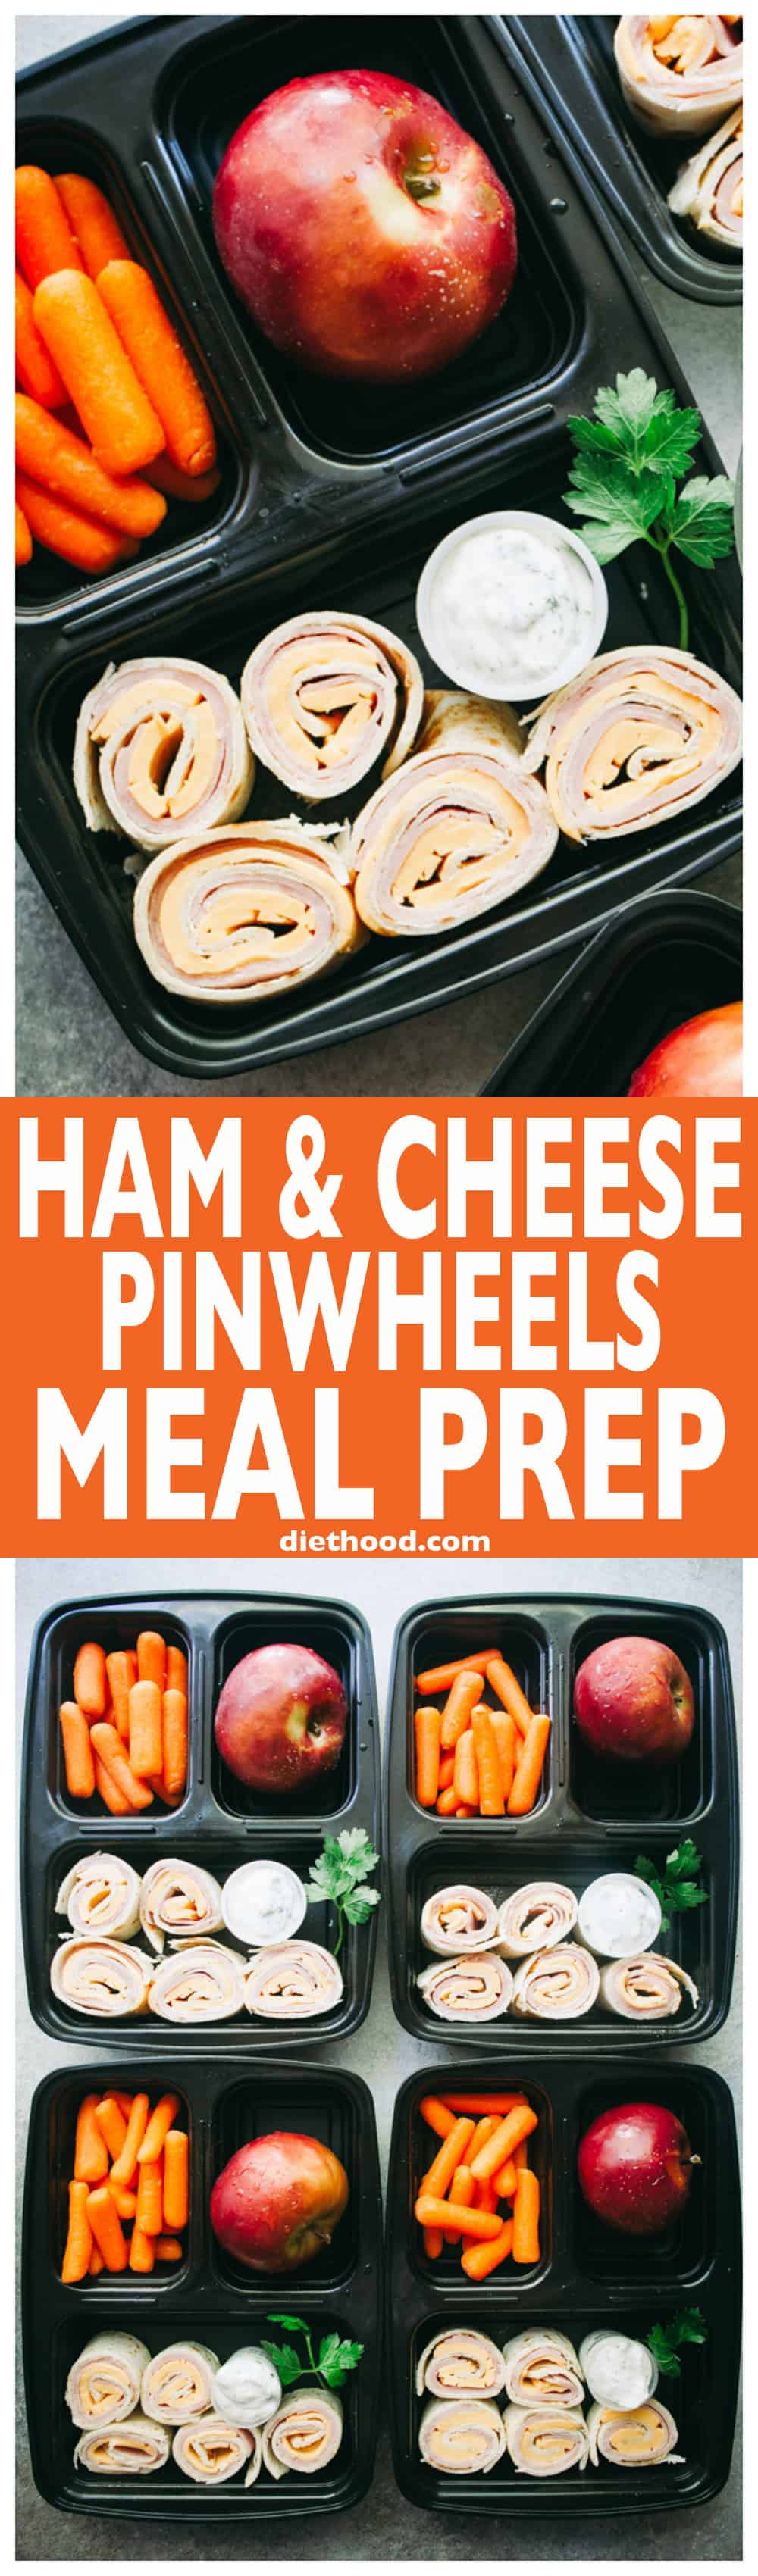 Ham and Cheese Pinwheels Meal Prep with Homemade Ranch Dip - Prep your BACK-TO-SCHOOL lunches with these delicious, easy-to-make ham and cheese pinwheels and a side of homemade ranch dip!